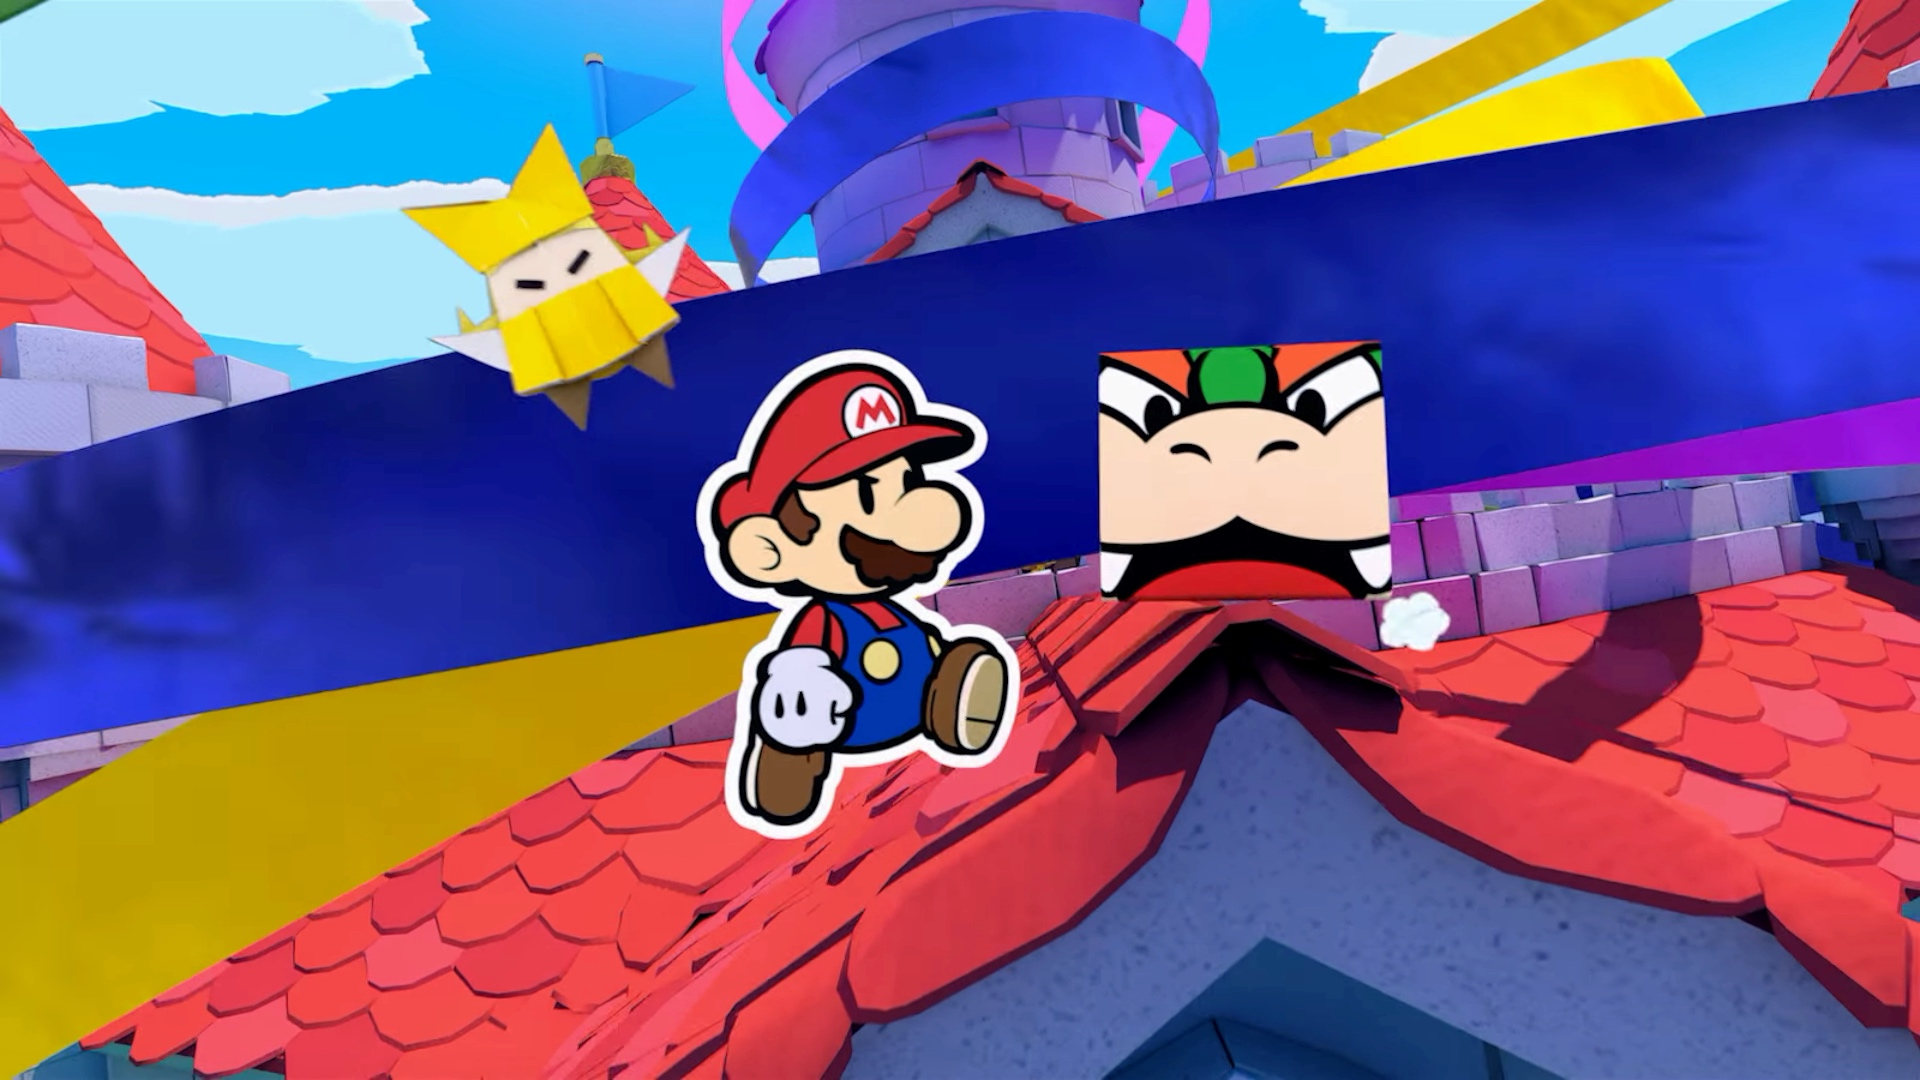 New Paper Mario coming to Nintendo Switch in July